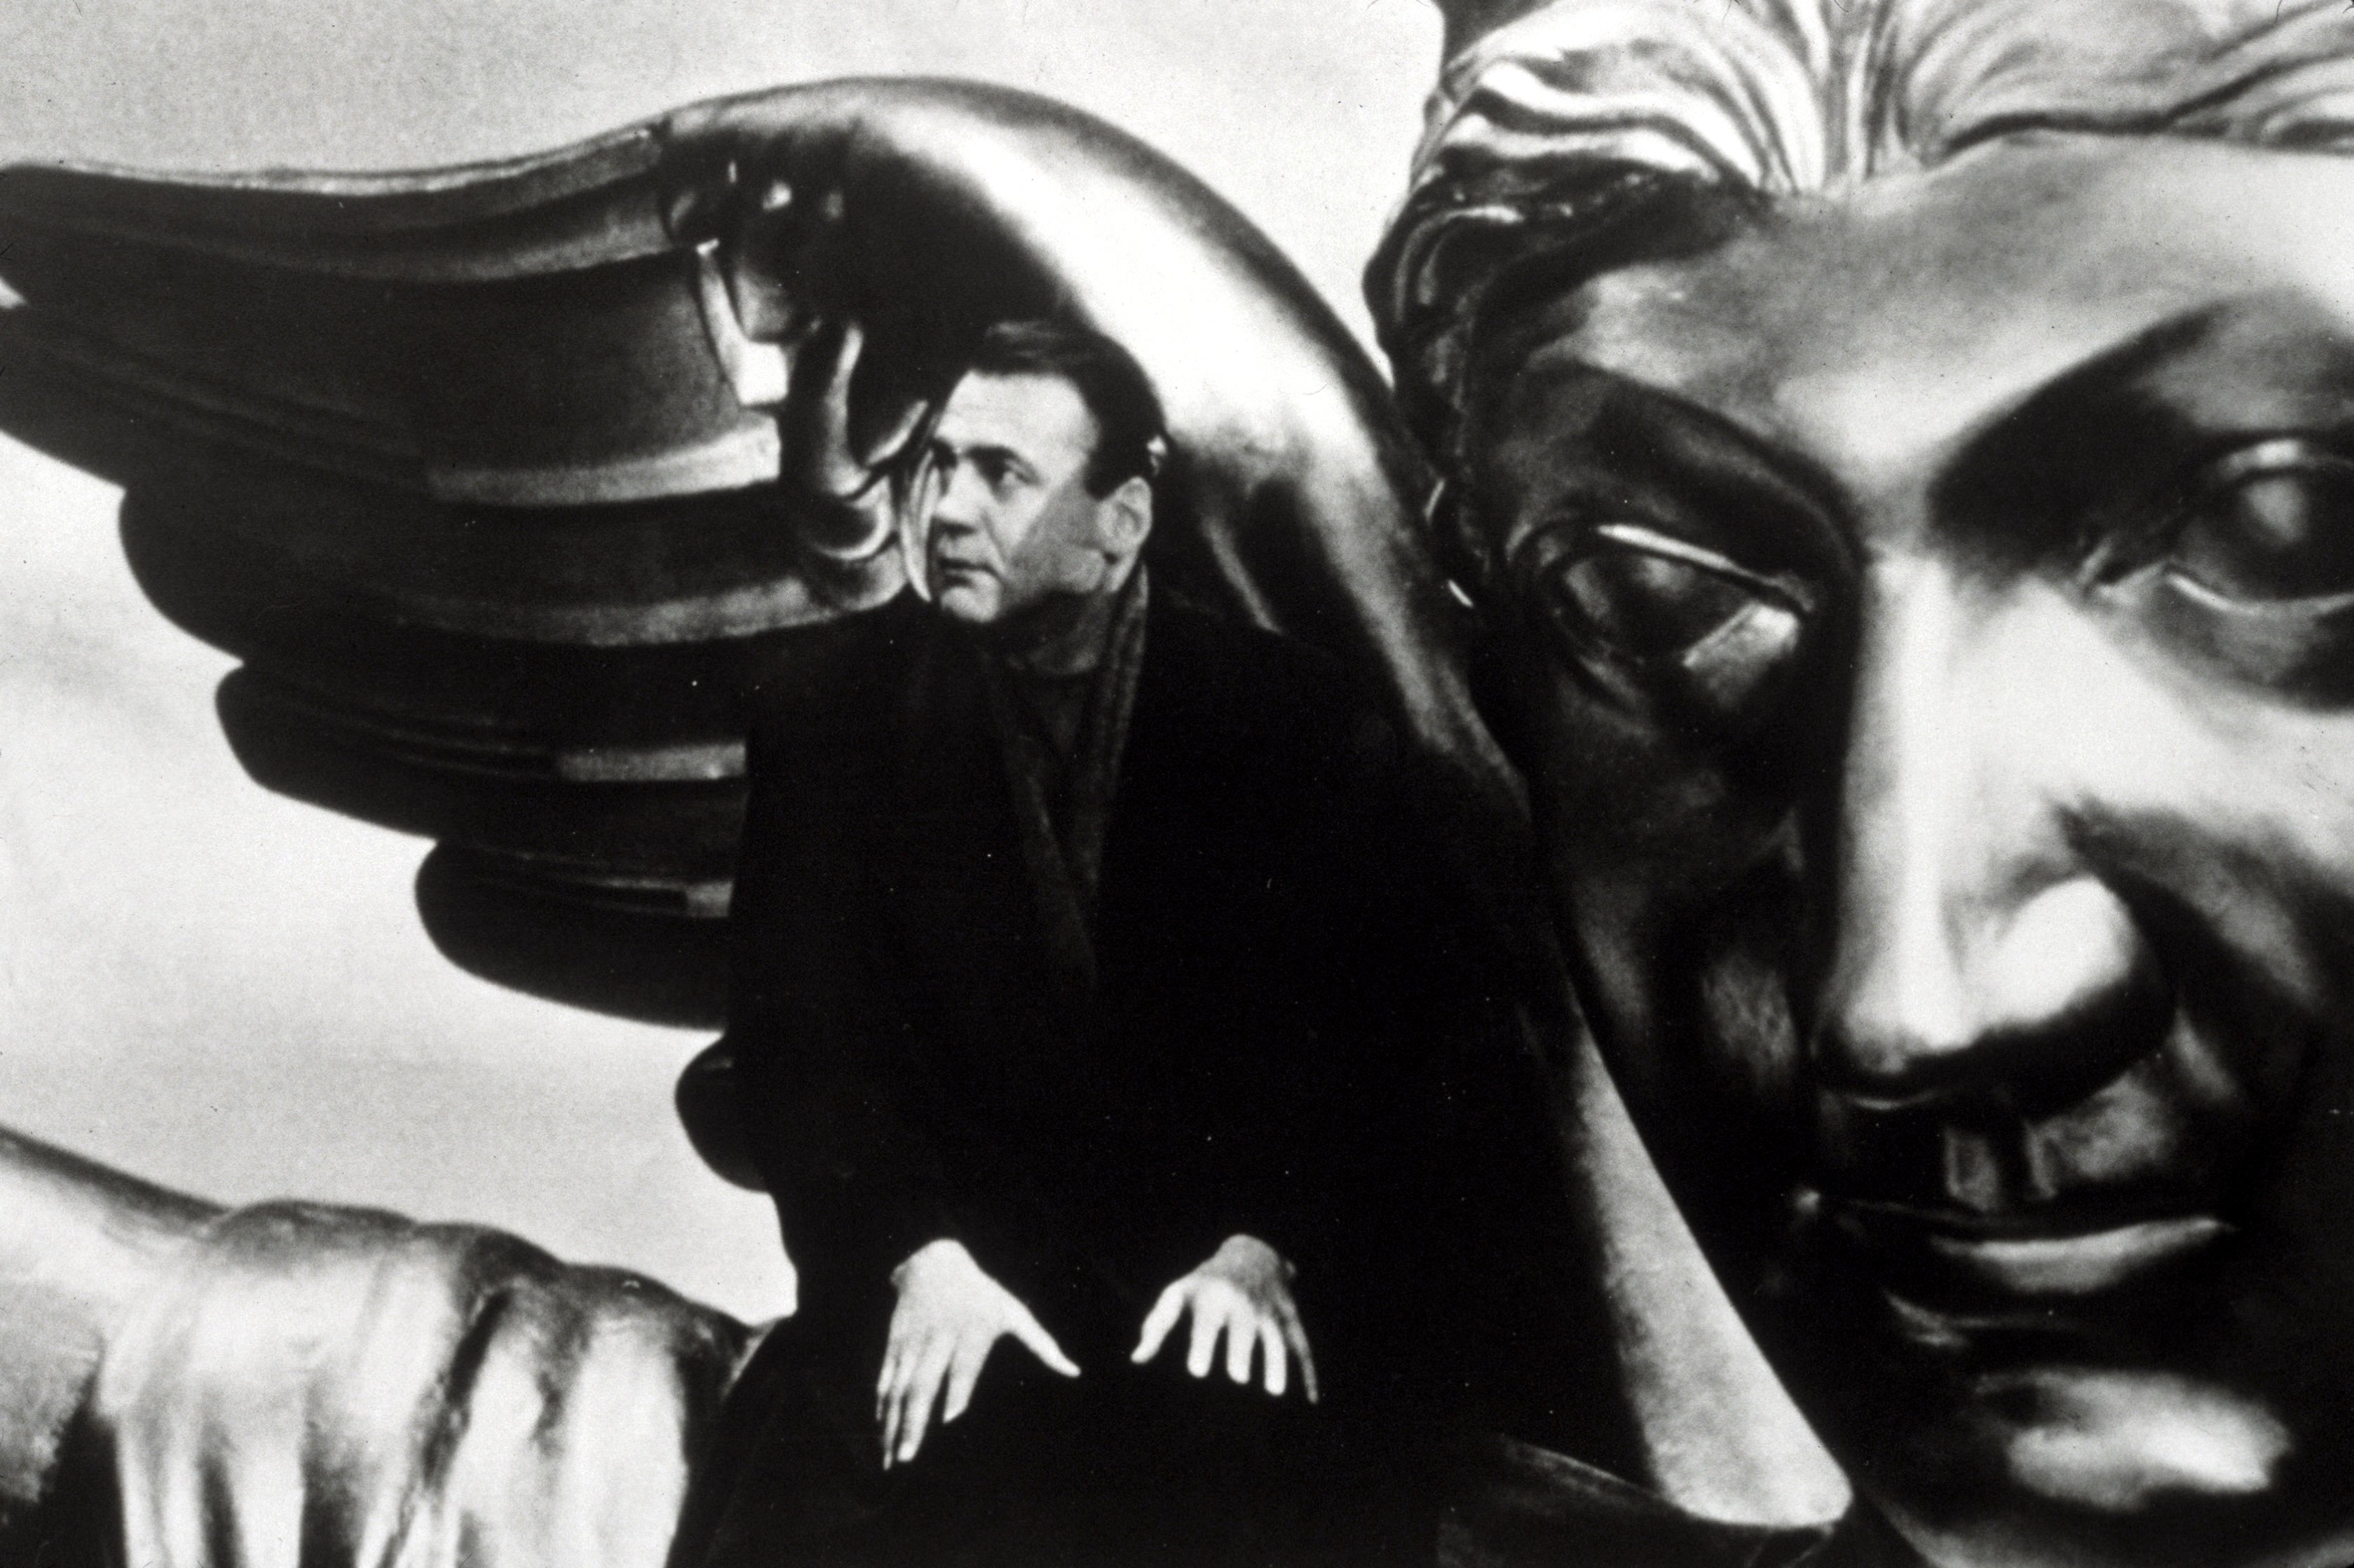 Editorial use onlyMandatory Credit: Photo by Snap/REX/Shutterstock (390932by)FILM STILLS OF 'WINGS OF DESIRE' WITH 1988, BRUNO GANZ, WIM WENDERS IN 1988VARIOUS